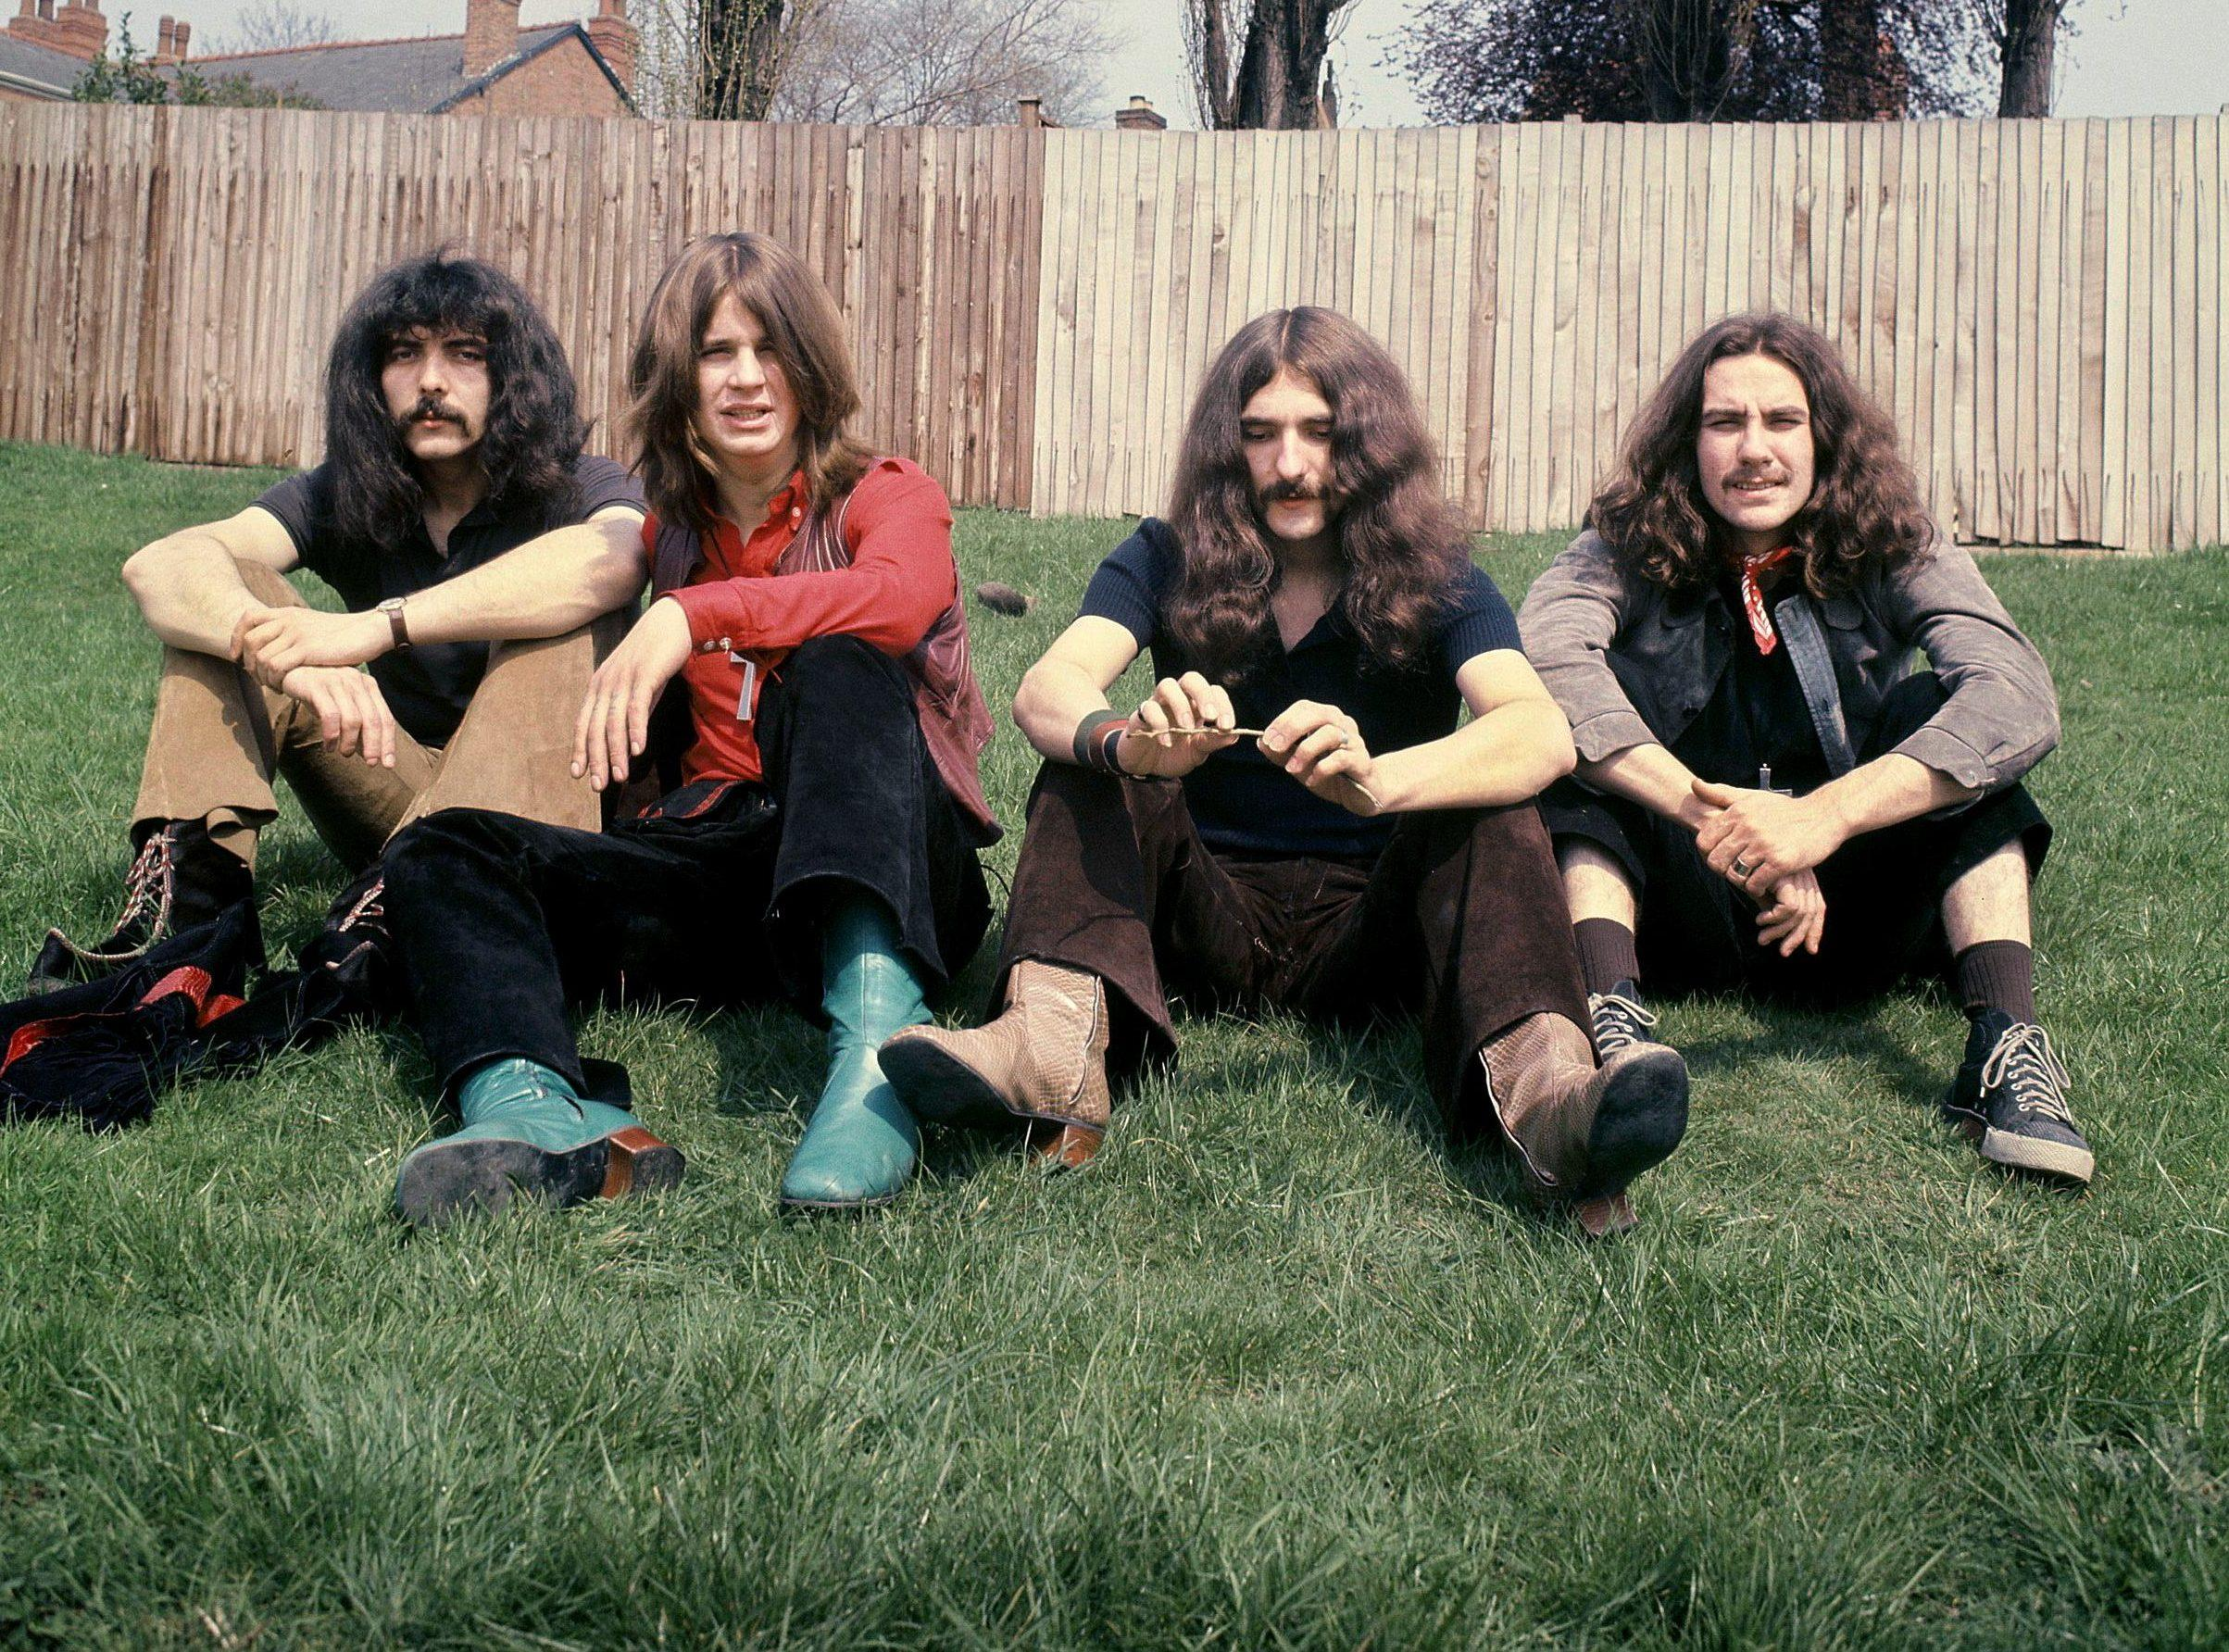 Black Sabbath pictured in their early years by Jim Simpson outside his home in Edgbaston